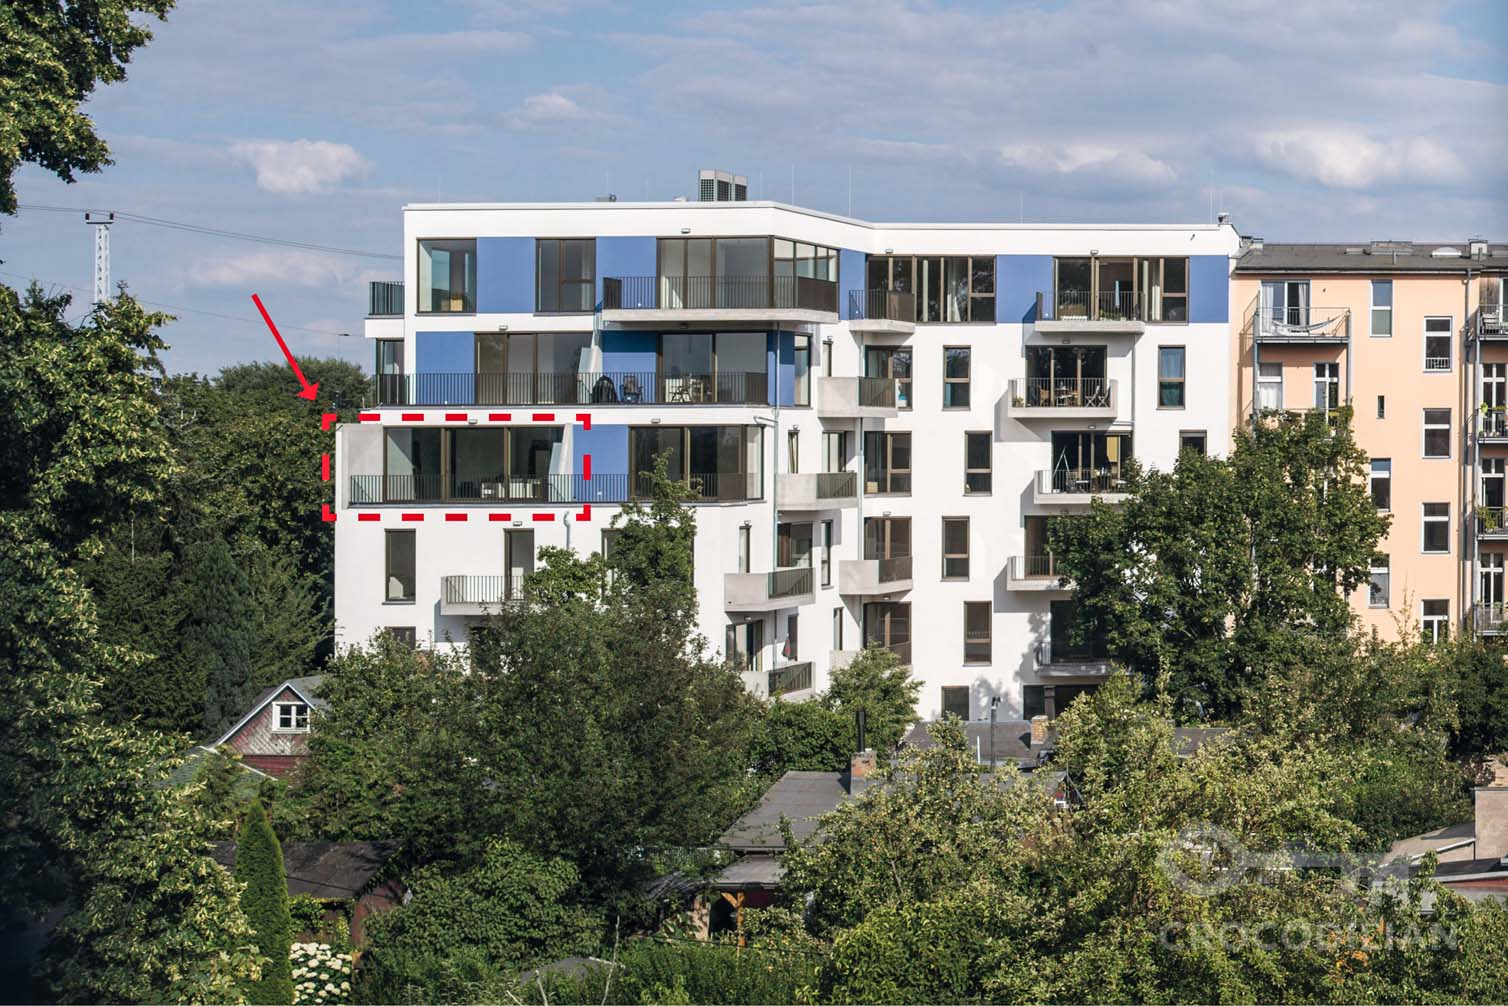 Design Apartment near Ostkreuz